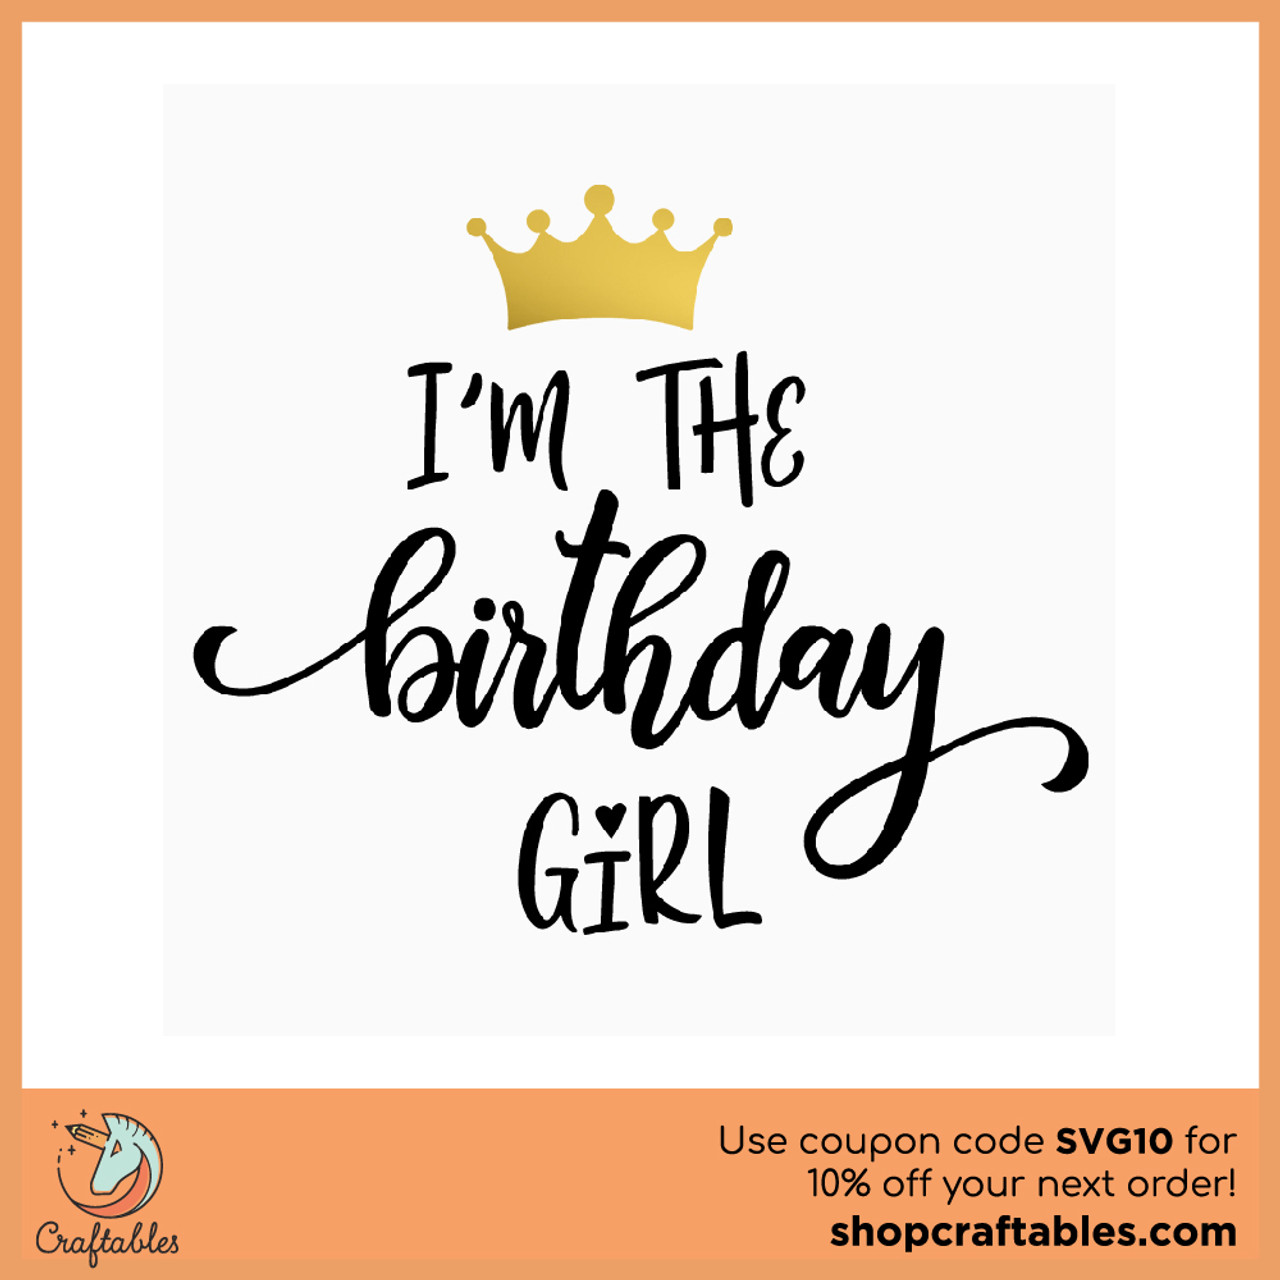 Download Free Birthday Girl SVG Cut File | Craftables